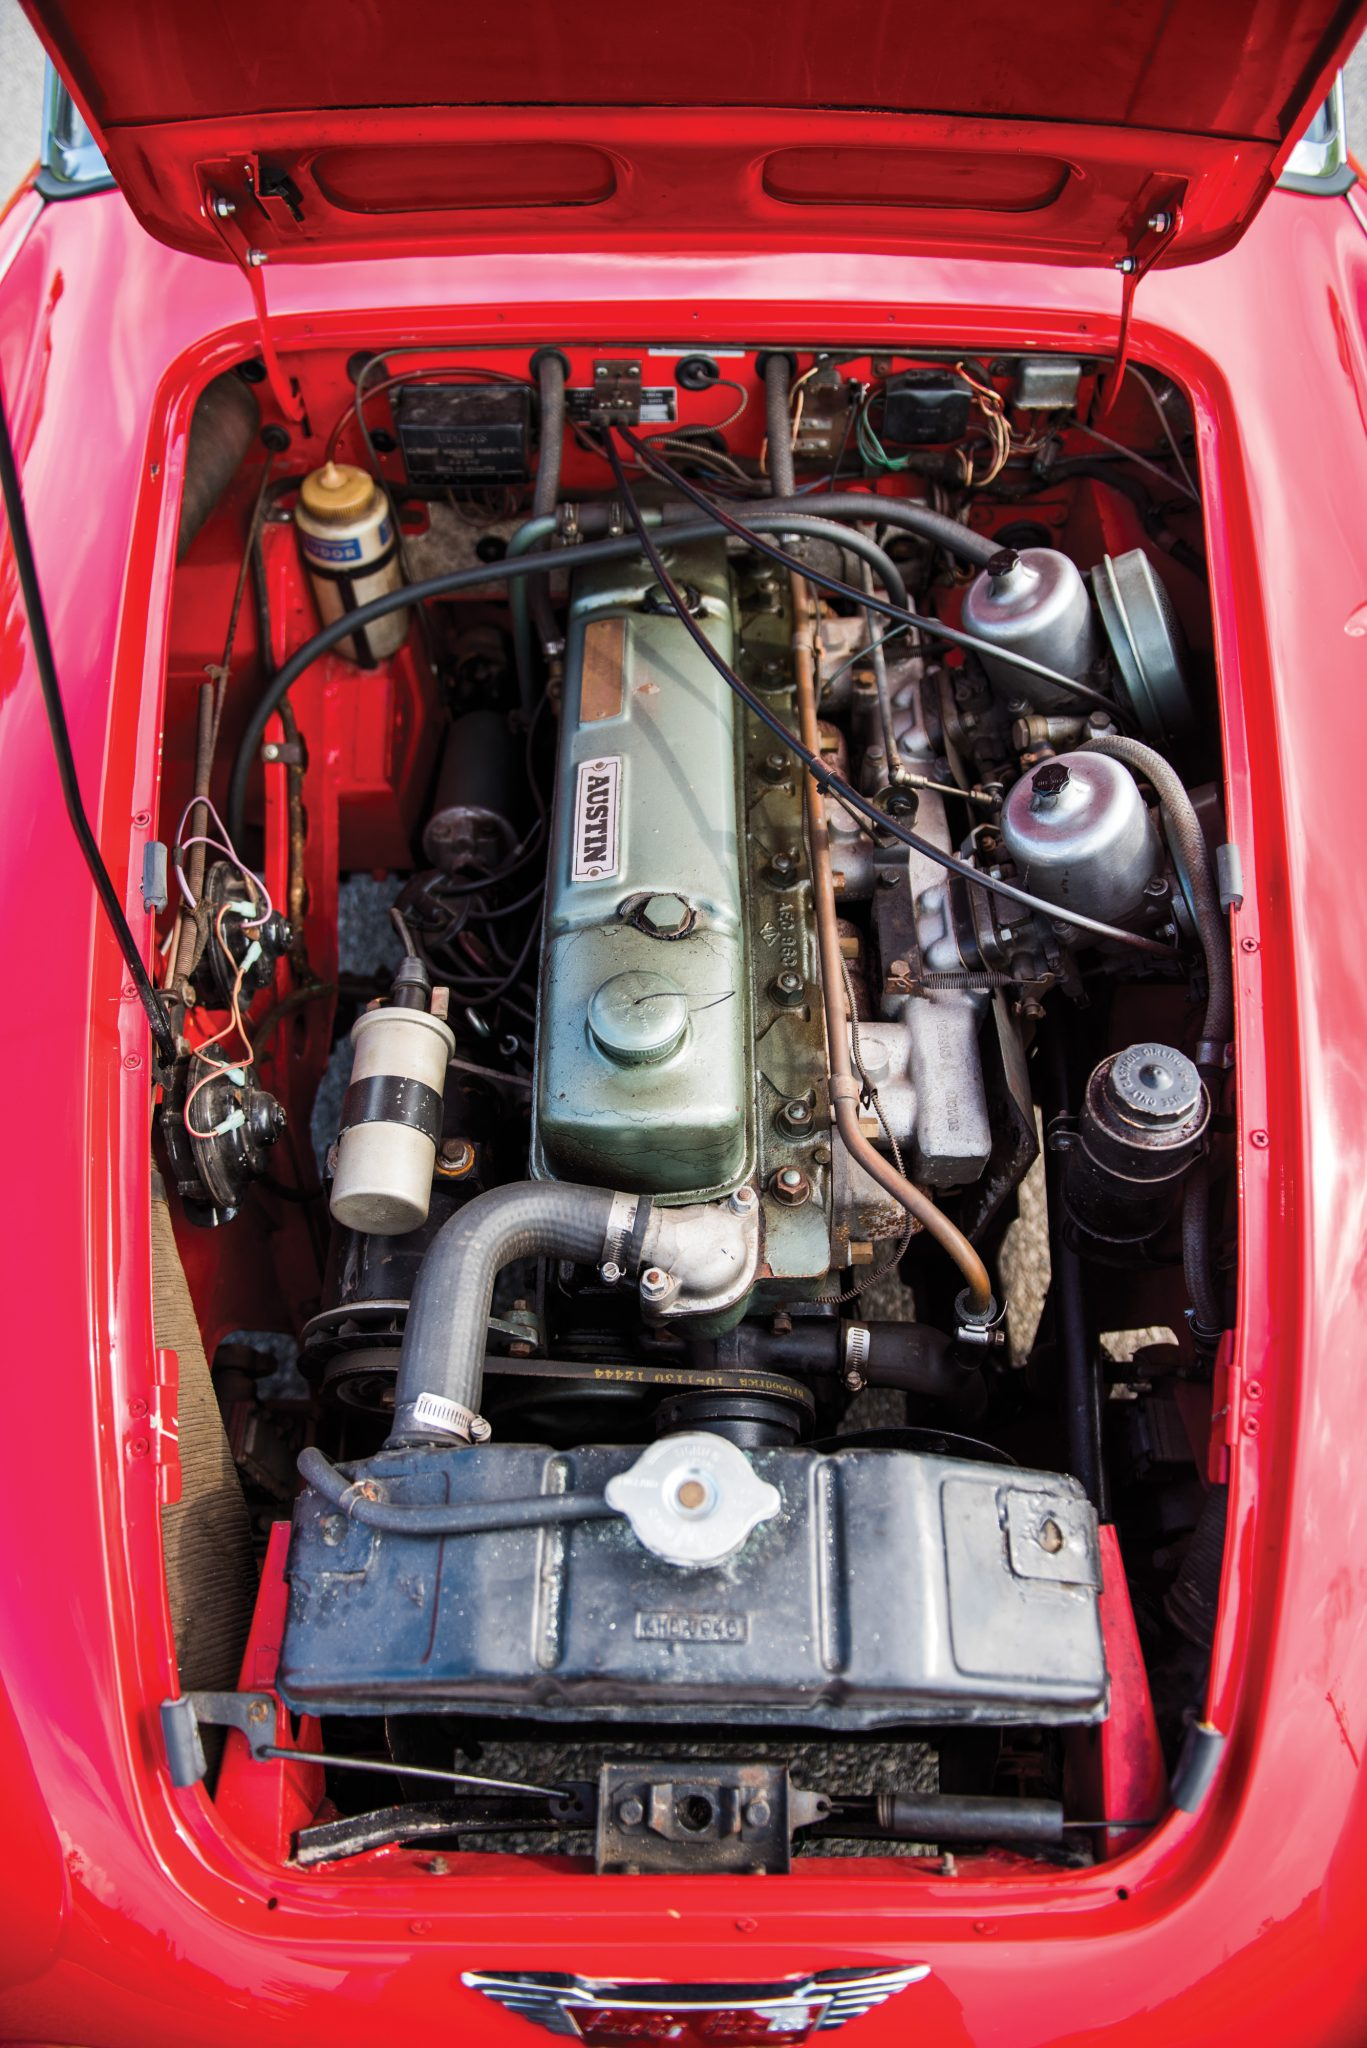 Oil In Coolant >> The Essential Buying Guide - Austin-Healey 3000